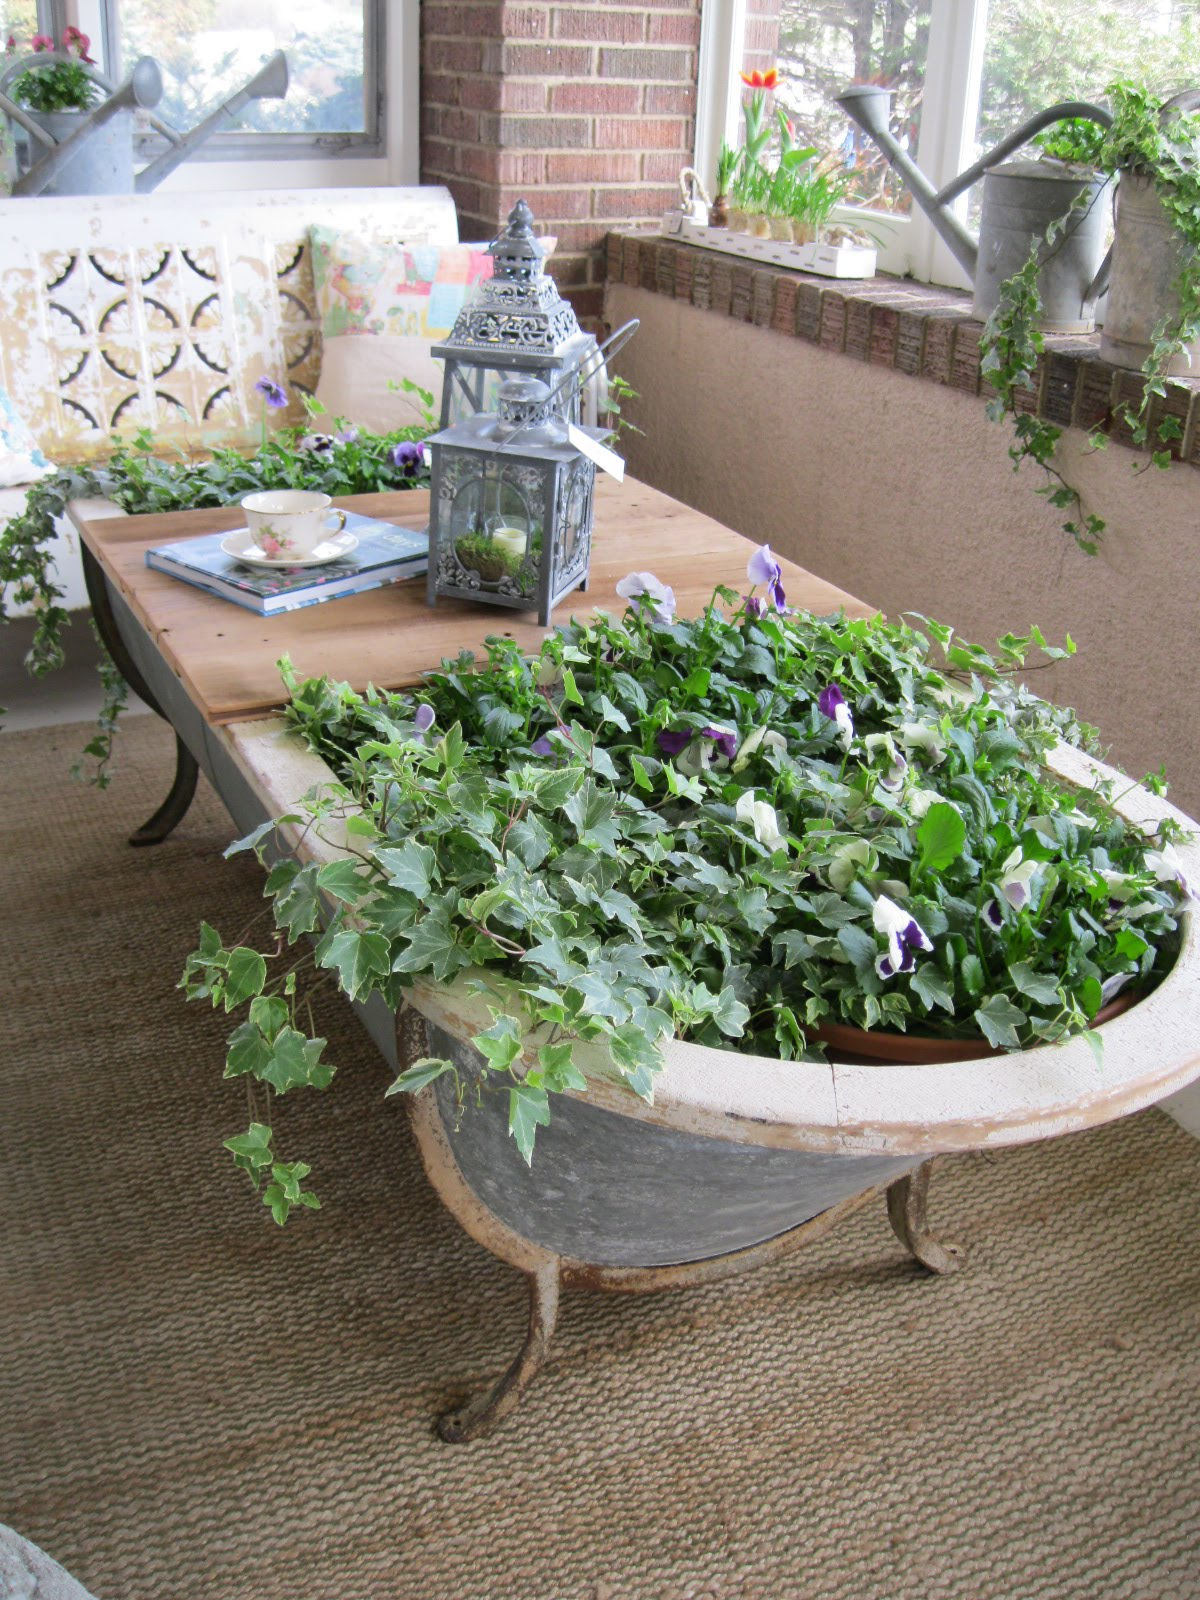 An old clawfoot tub wasn't put to waste in this thrift store DIY project - it's multipurpose new life is as a planter and outdoor patio table